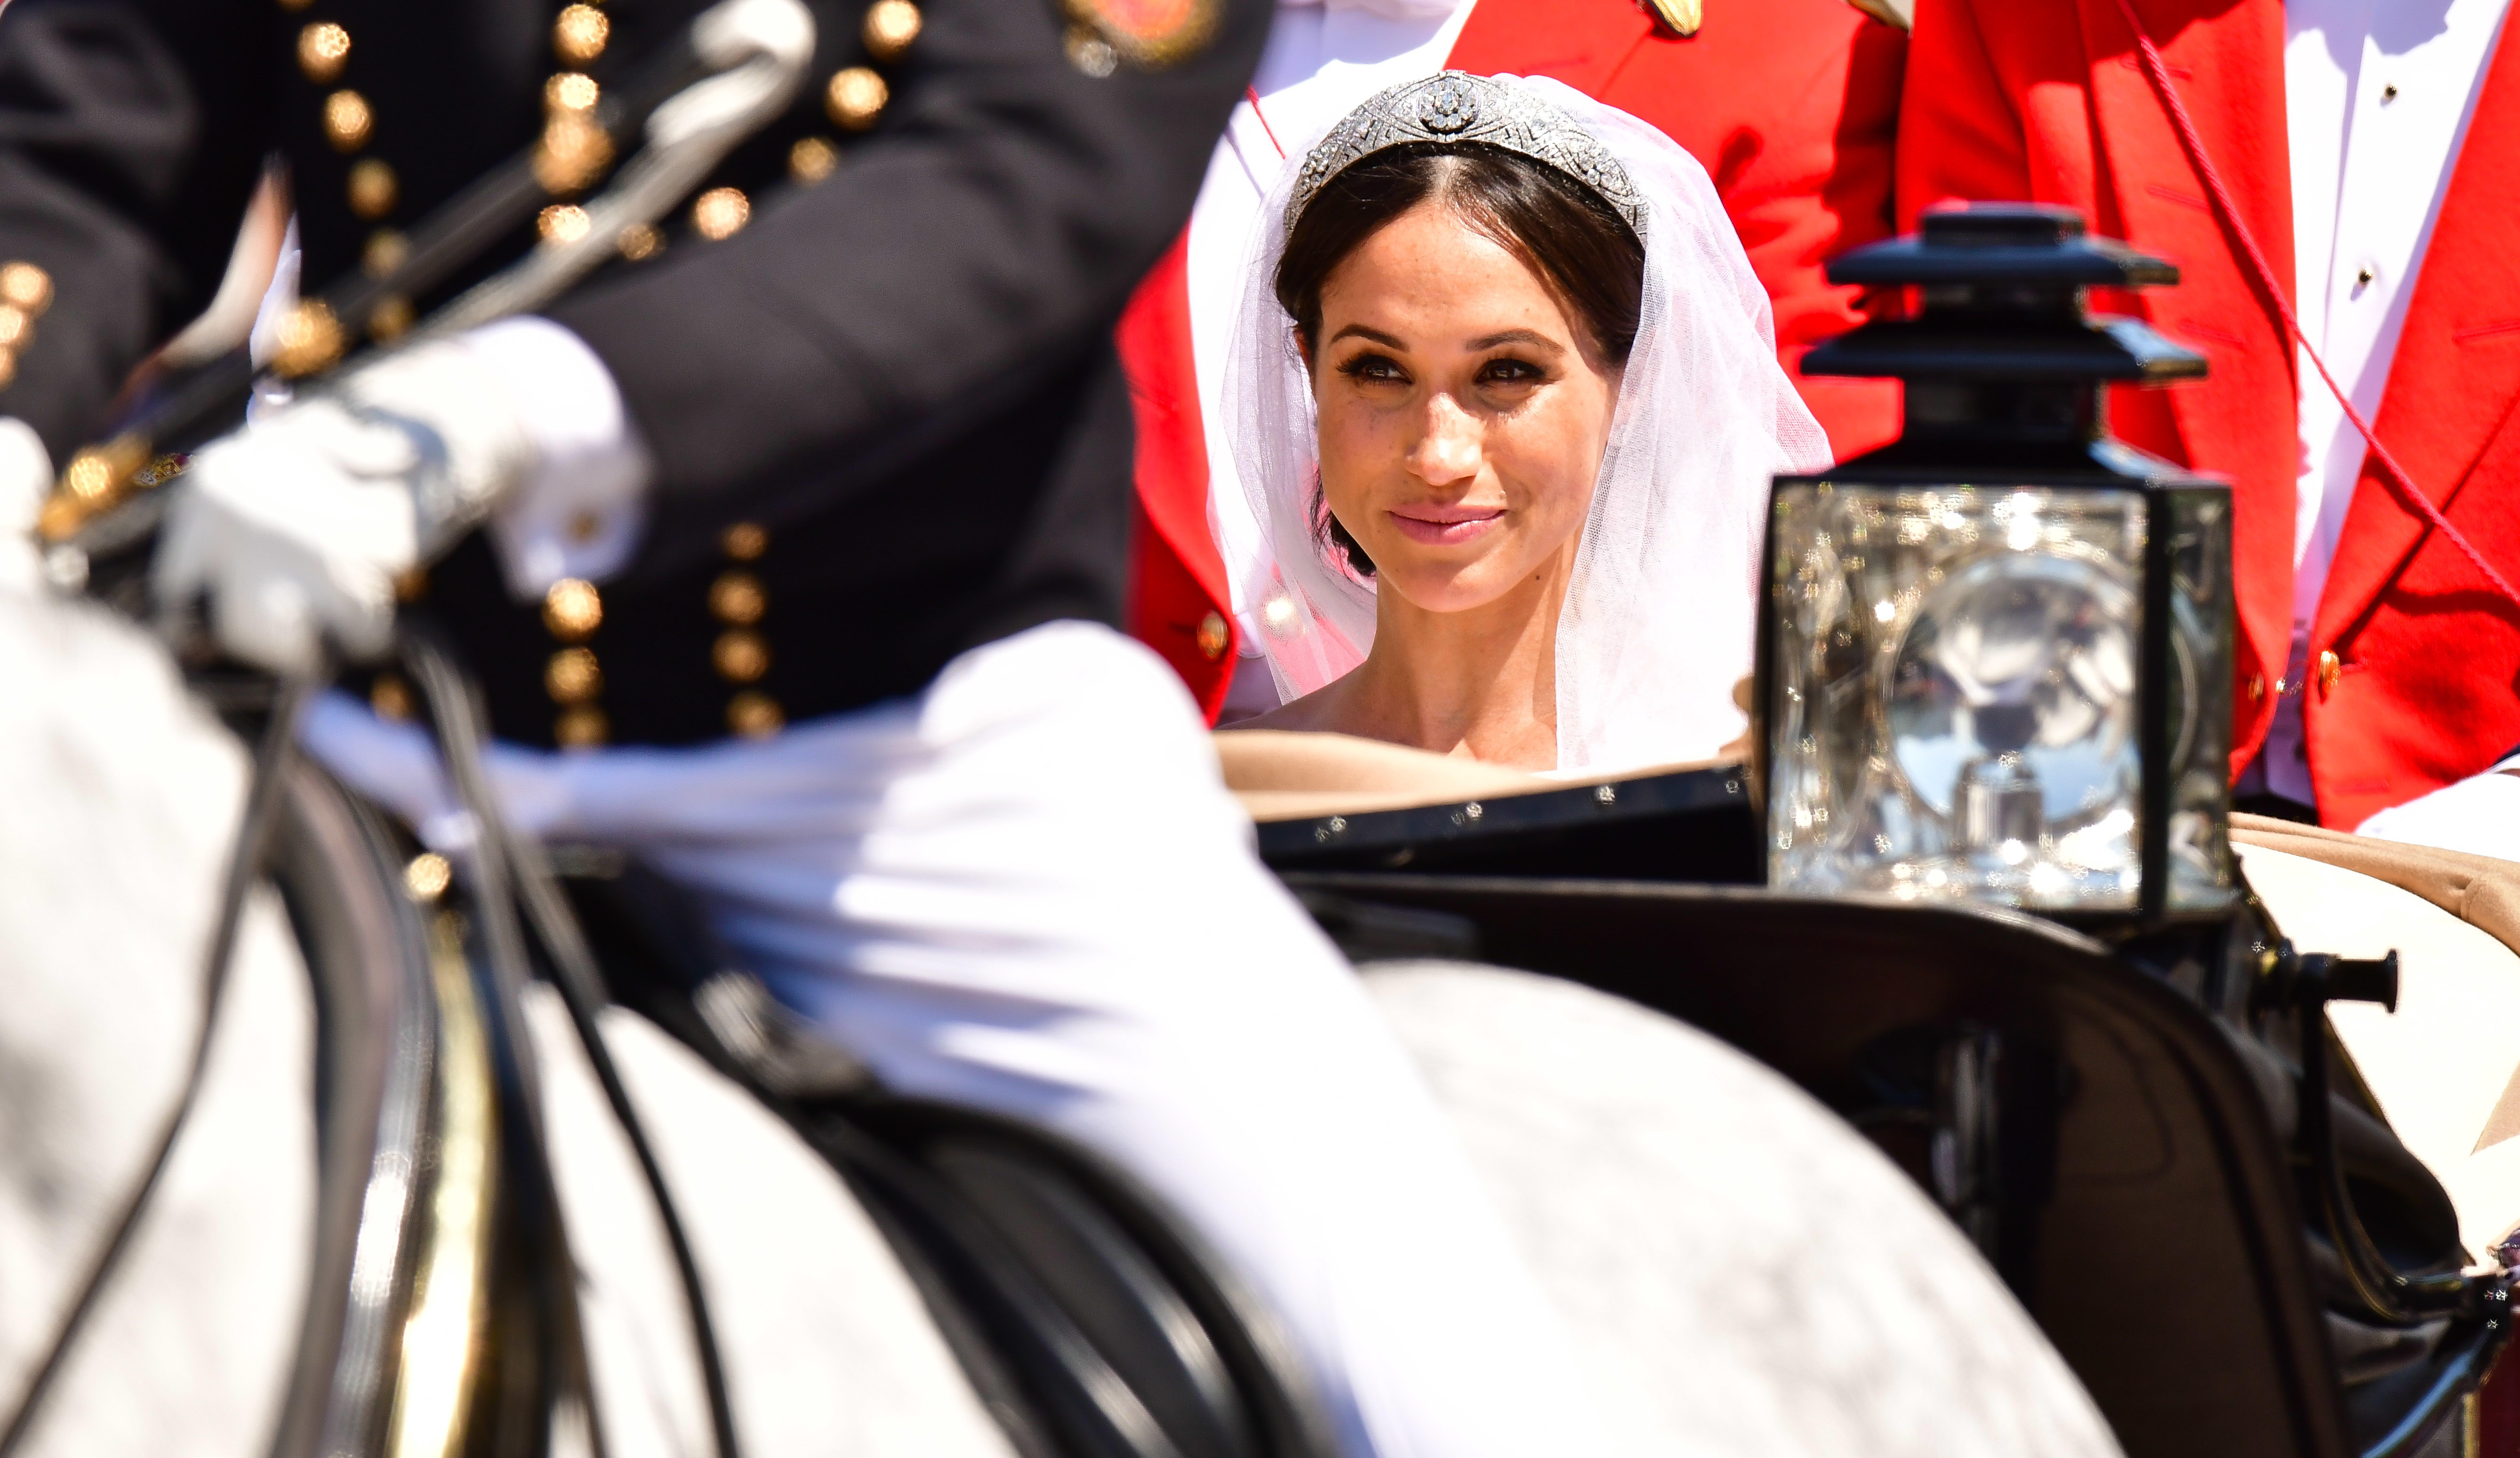 Official Royal Wedding Pictures.You Have To See The Official Royal Wedding Photos Kensington Palace